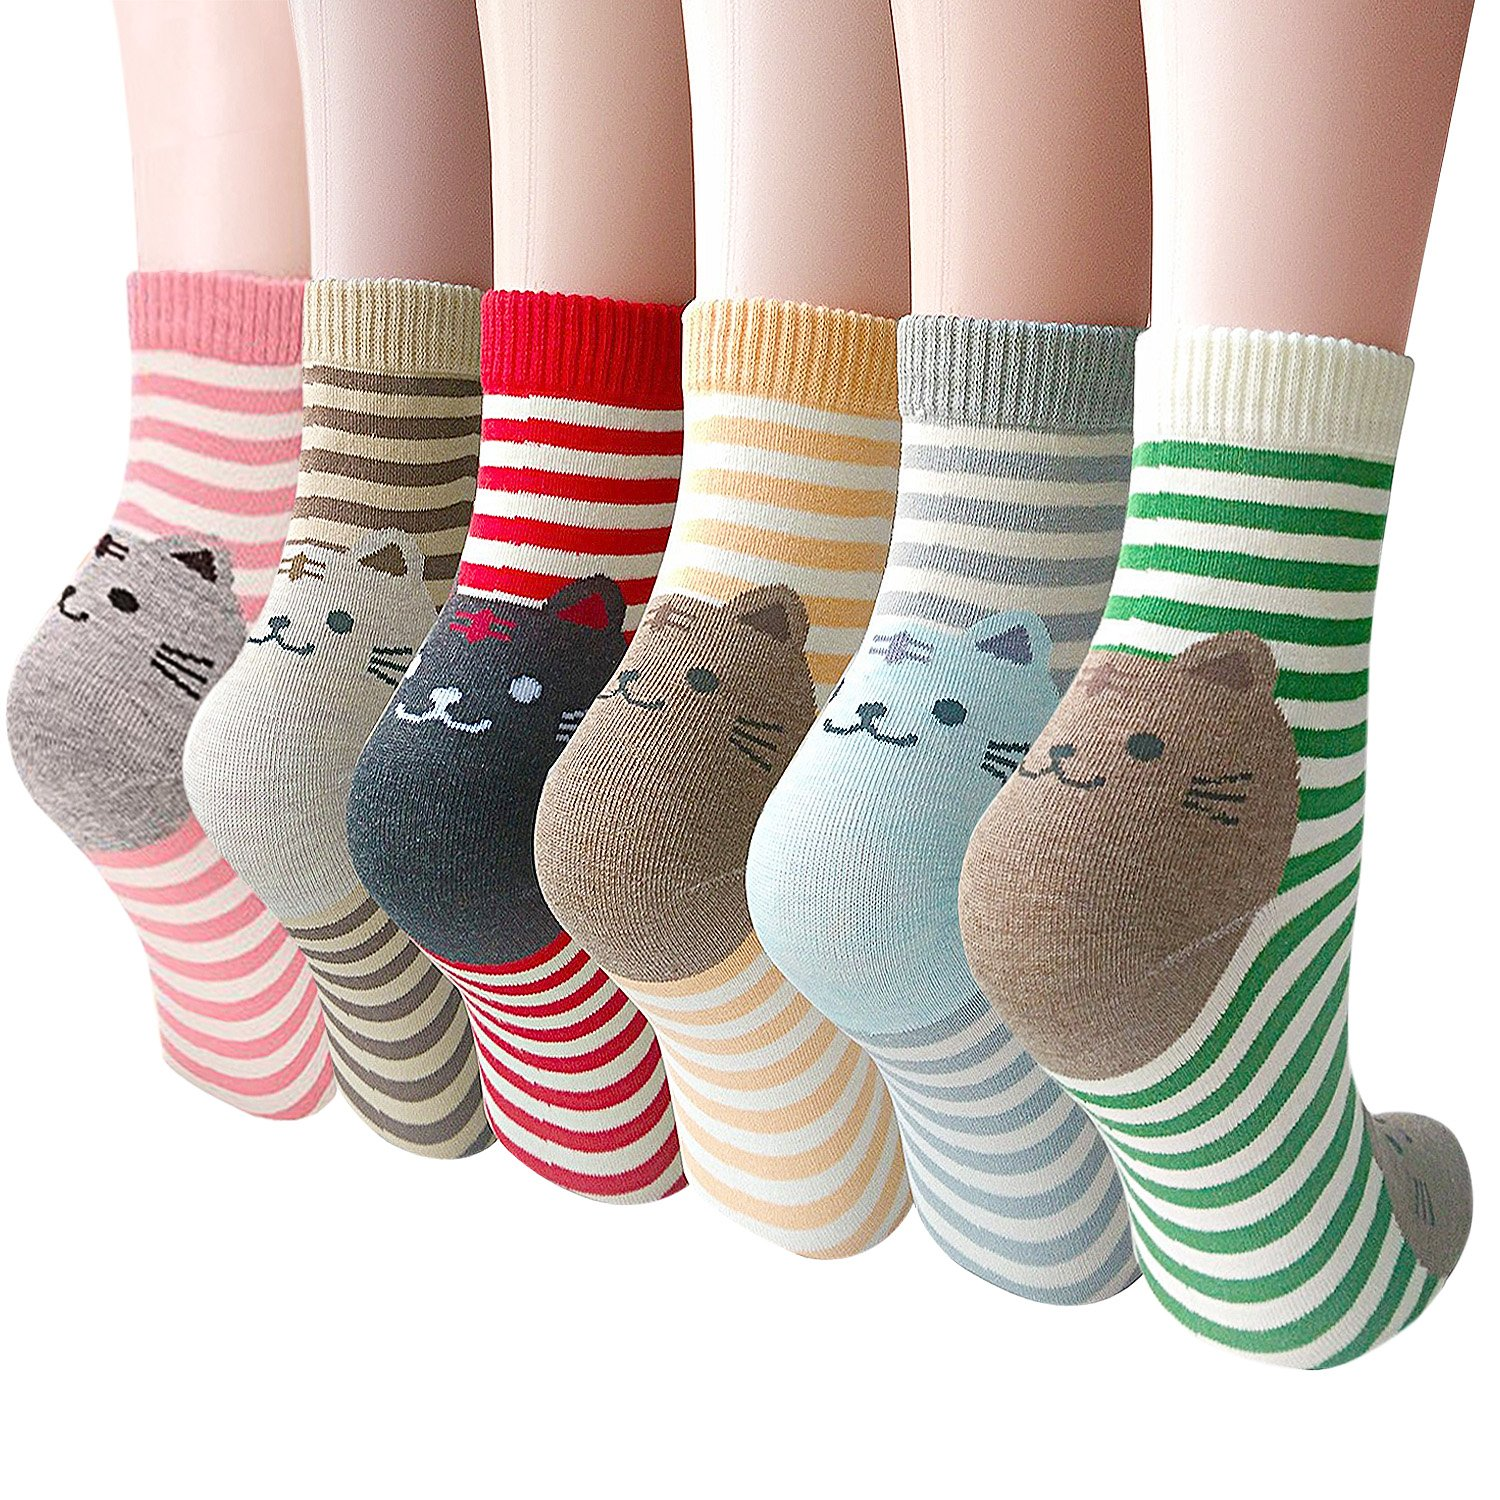 Womens Casual Socks - Cute Crazy Lovely Anial Cats Dogs Design Goods ofr Gift One Size fits All … (Cats Back)